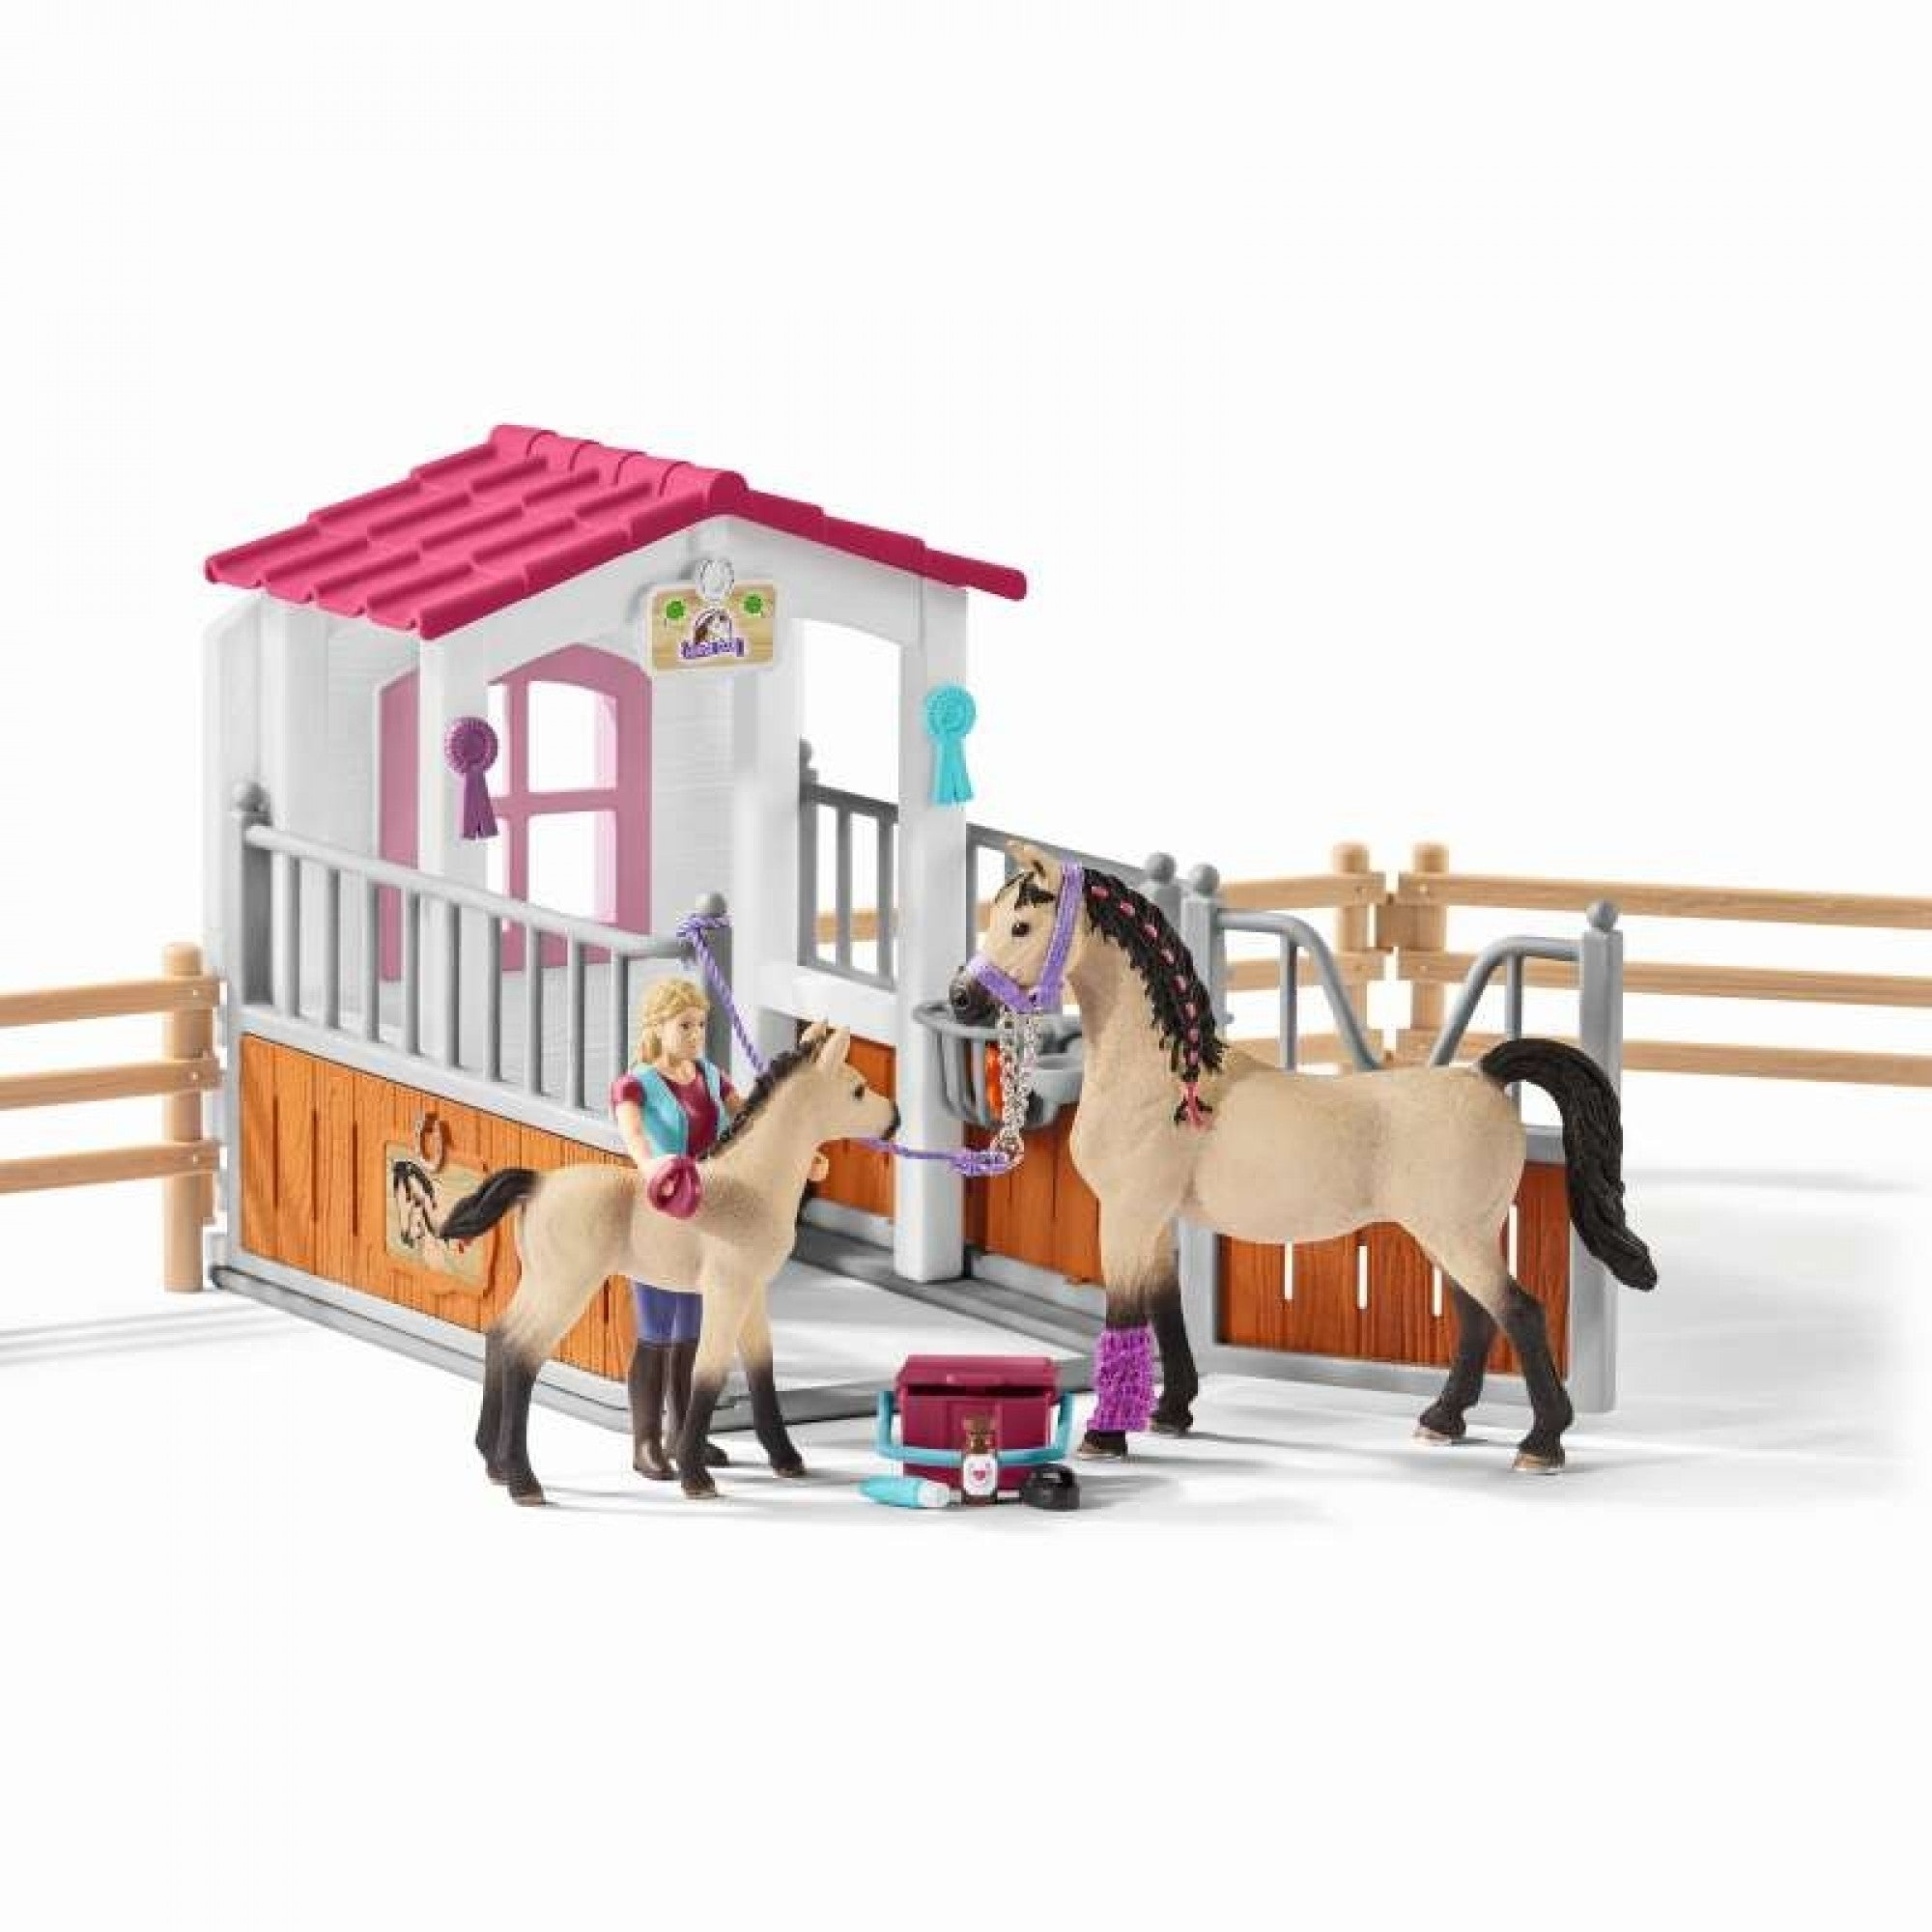 Horse Stall with Horses and Groom - Schleich